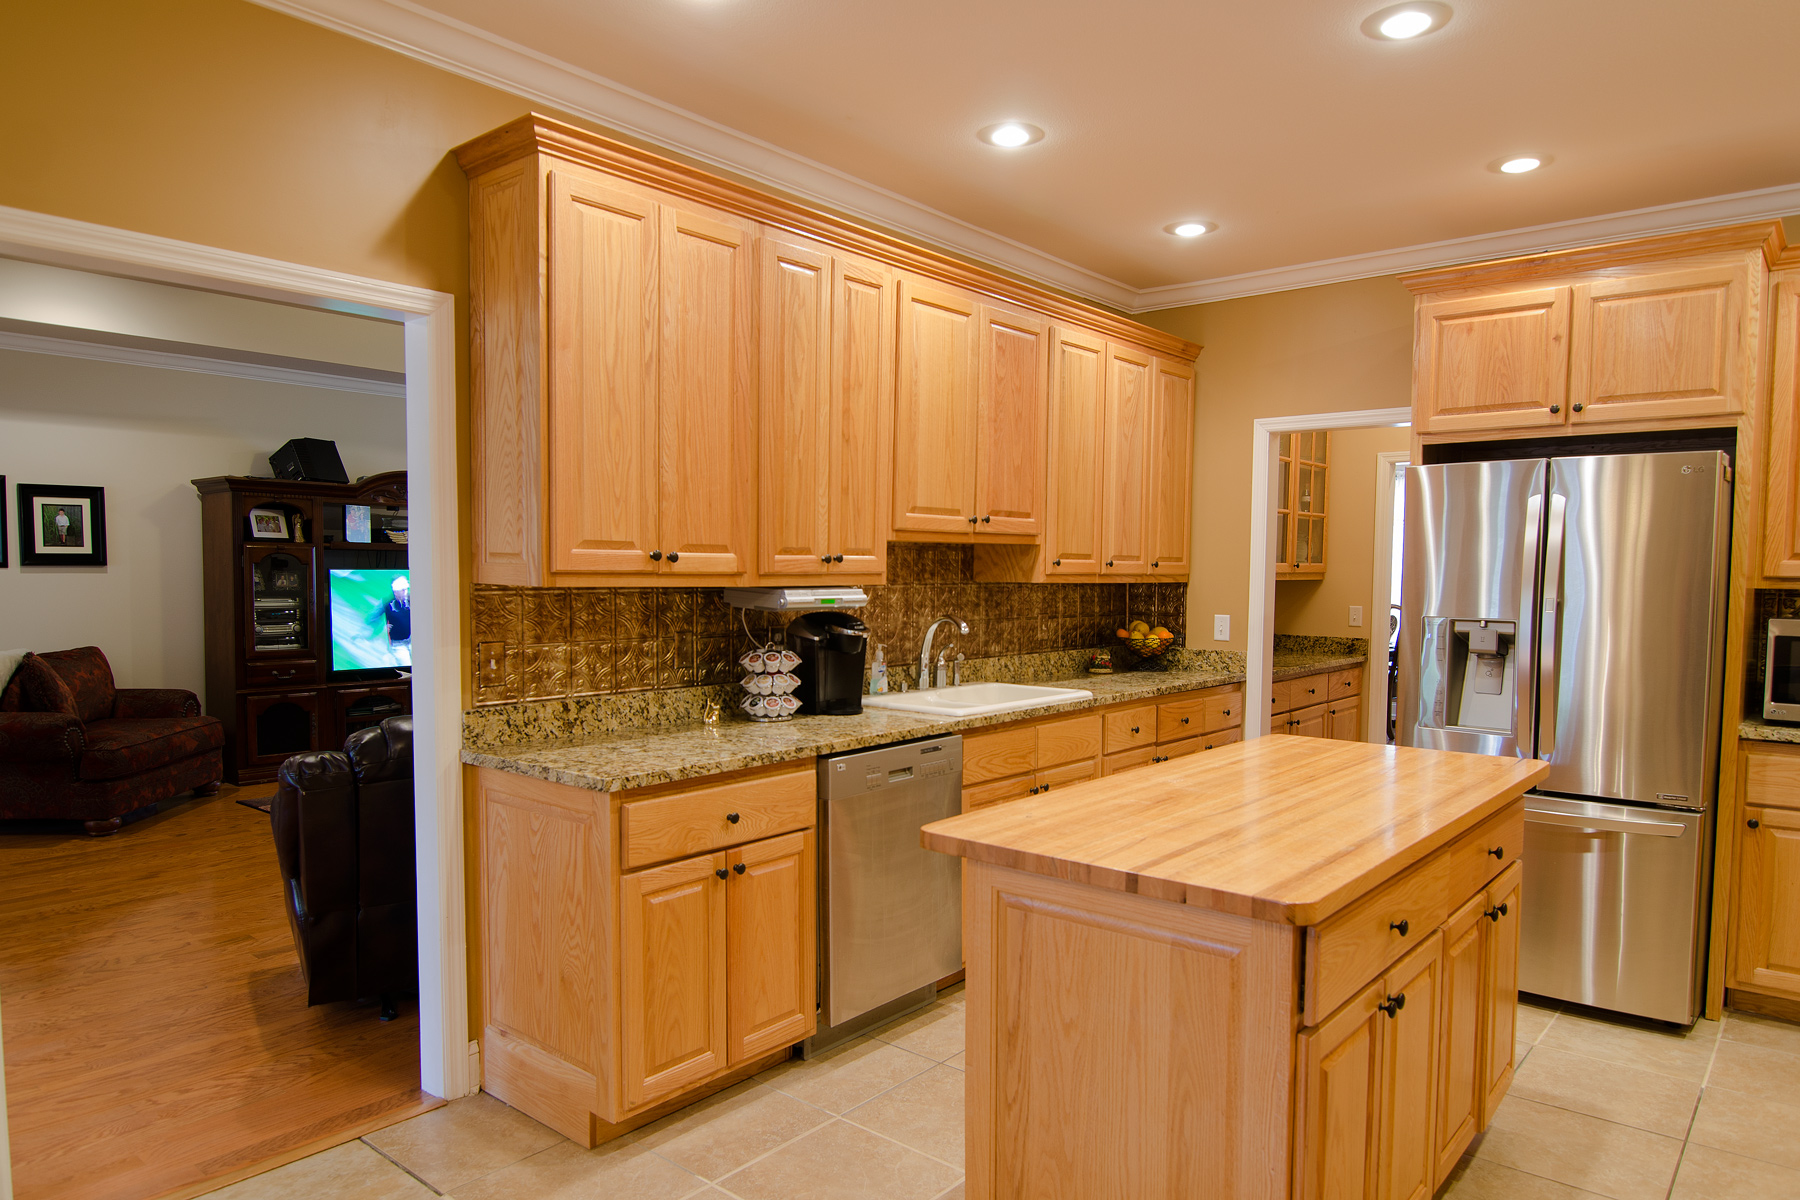 3riversrealty-kitchen2.jpg